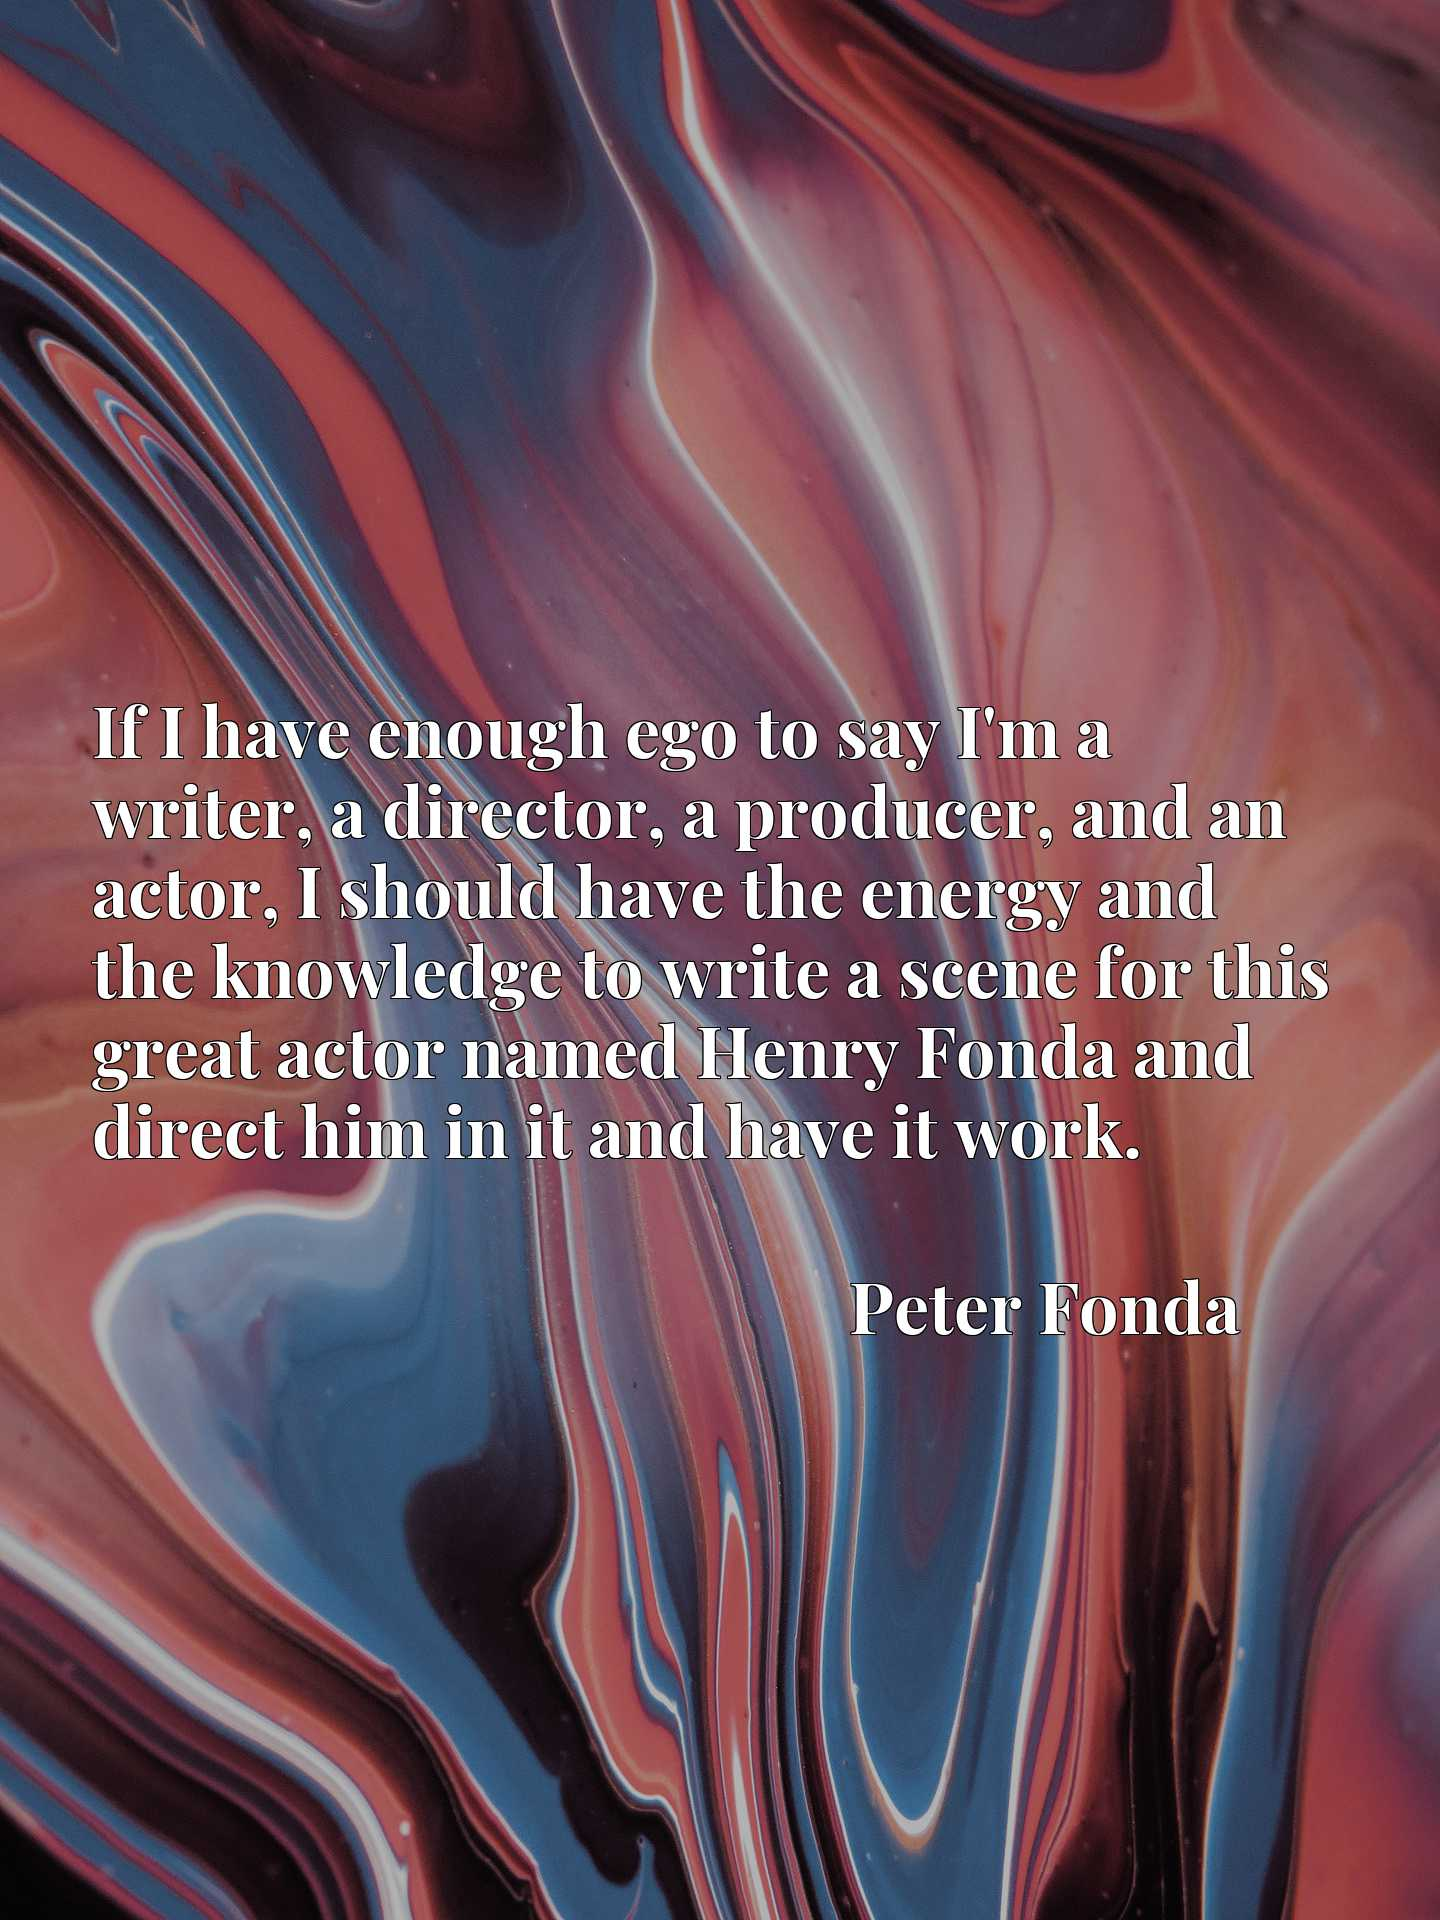 Quote Picture :If I have enough ego to say I'm a writer, a director, a producer, and an actor, I should have the energy and the knowledge to write a scene for this great actor named Henry Fonda and direct him in it and have it work.